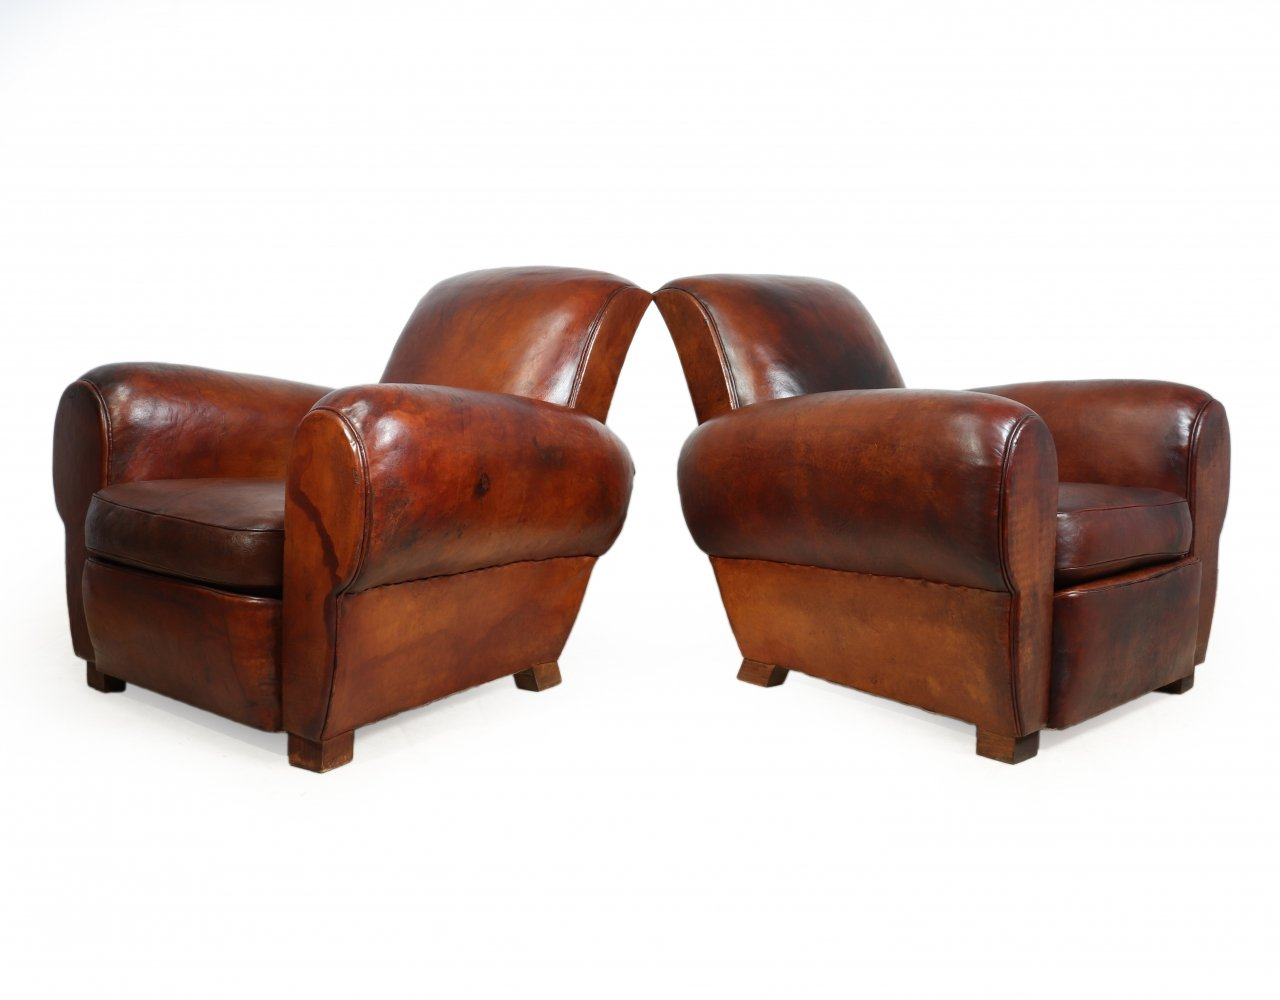 Pair of French Leather Club Chairs, 1940s